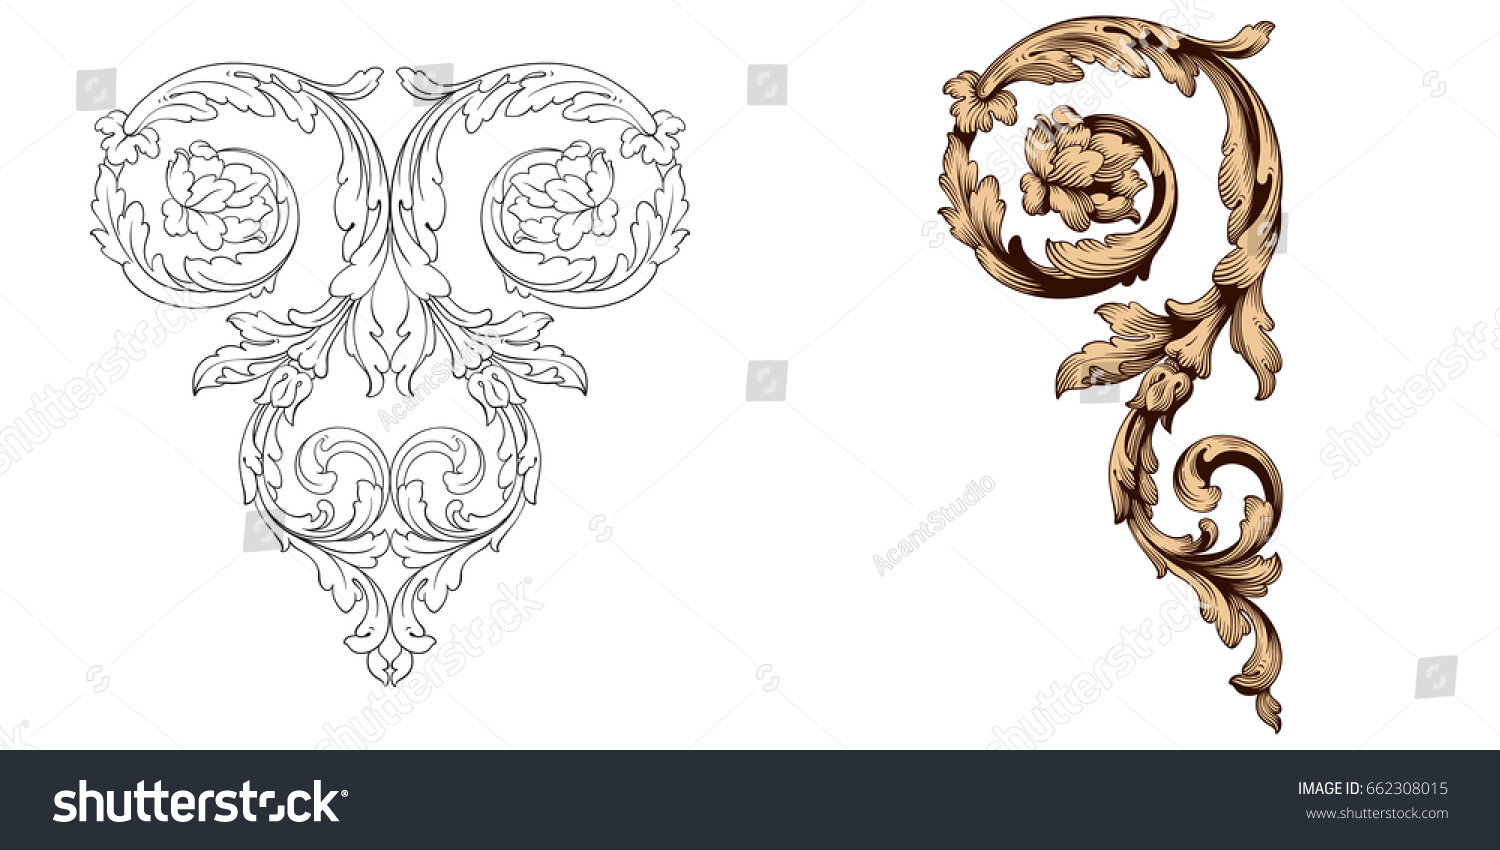 Baroque vector set vintage elements design stock vector for Baroque design elements